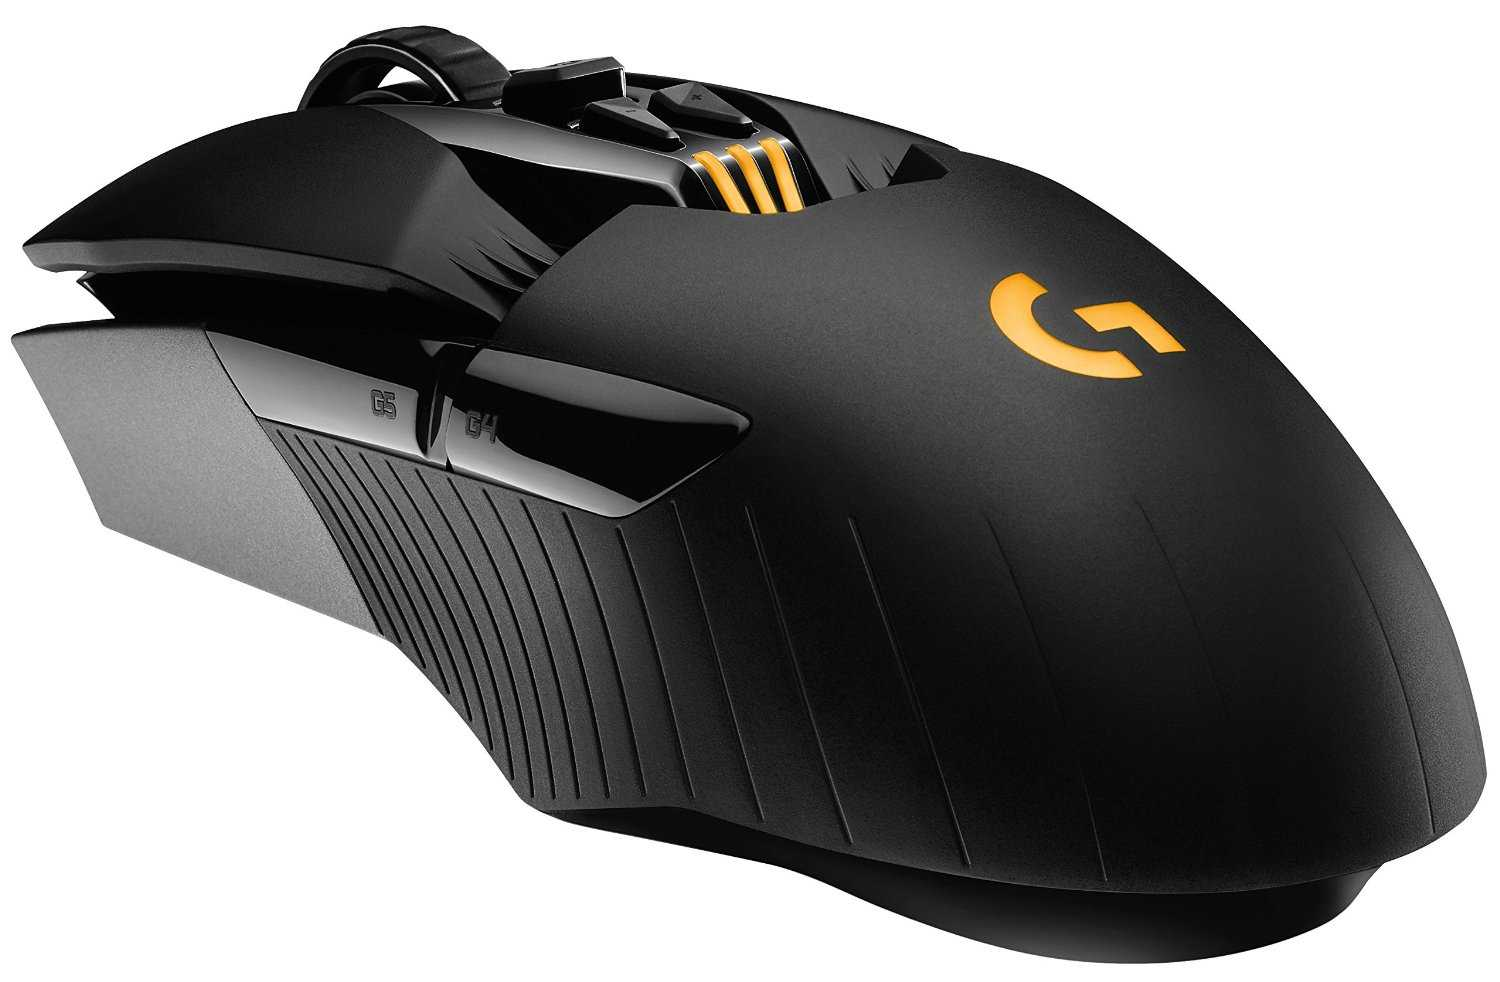 Best Gaming Mouse Review 2020 - Buyer's guide cover image